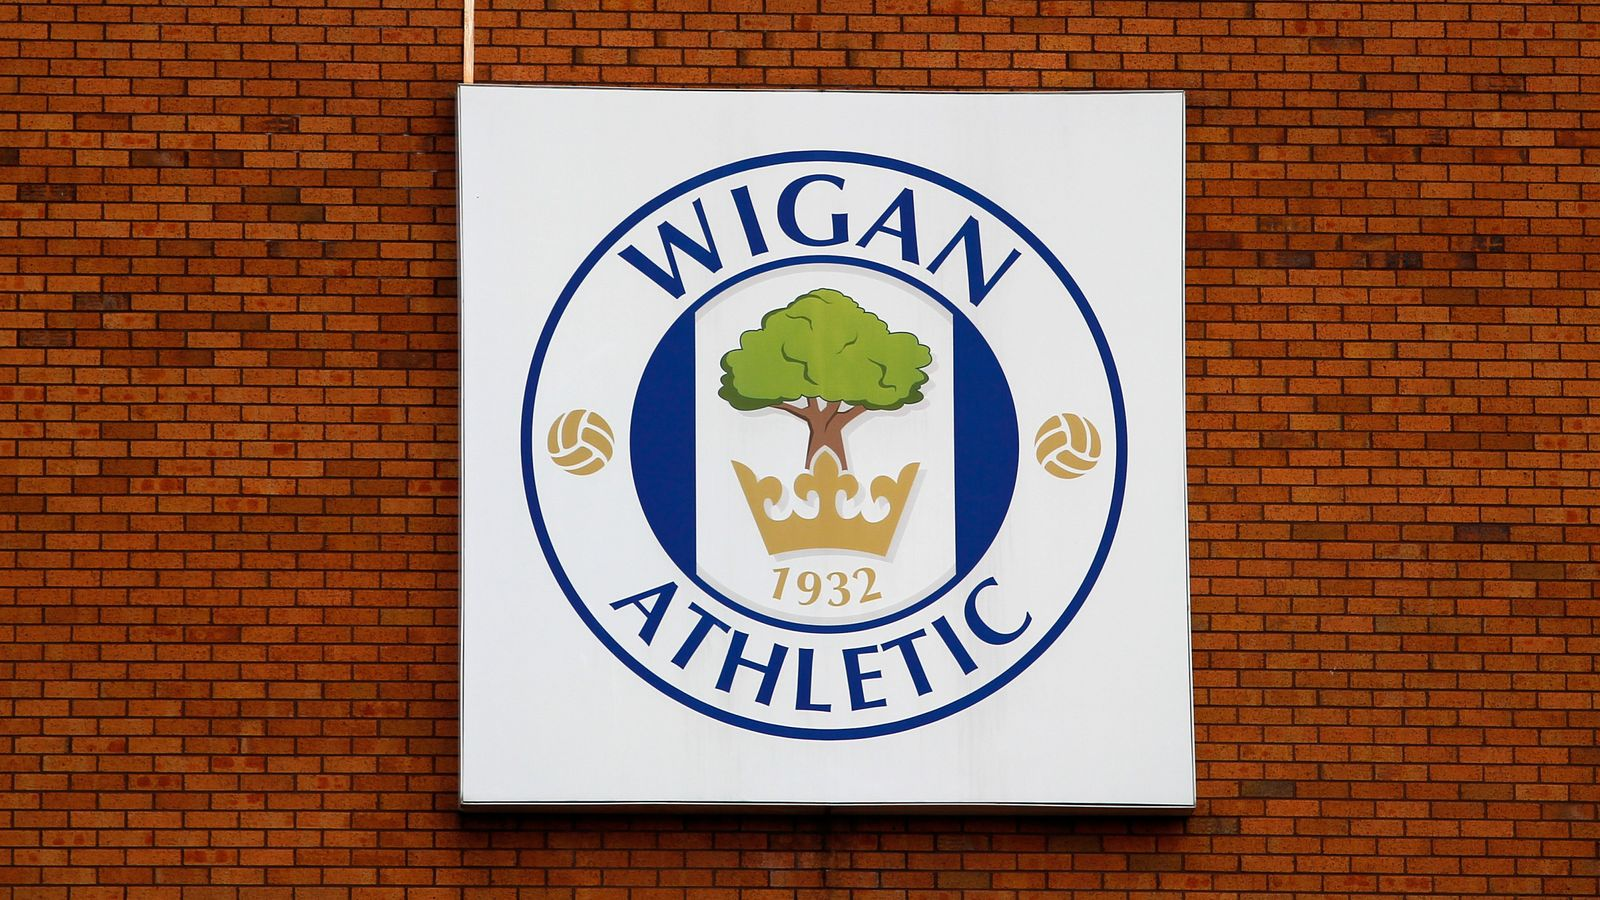 Wigan: Administrators say 12 parties interested in buying Championship club - Sky Sports